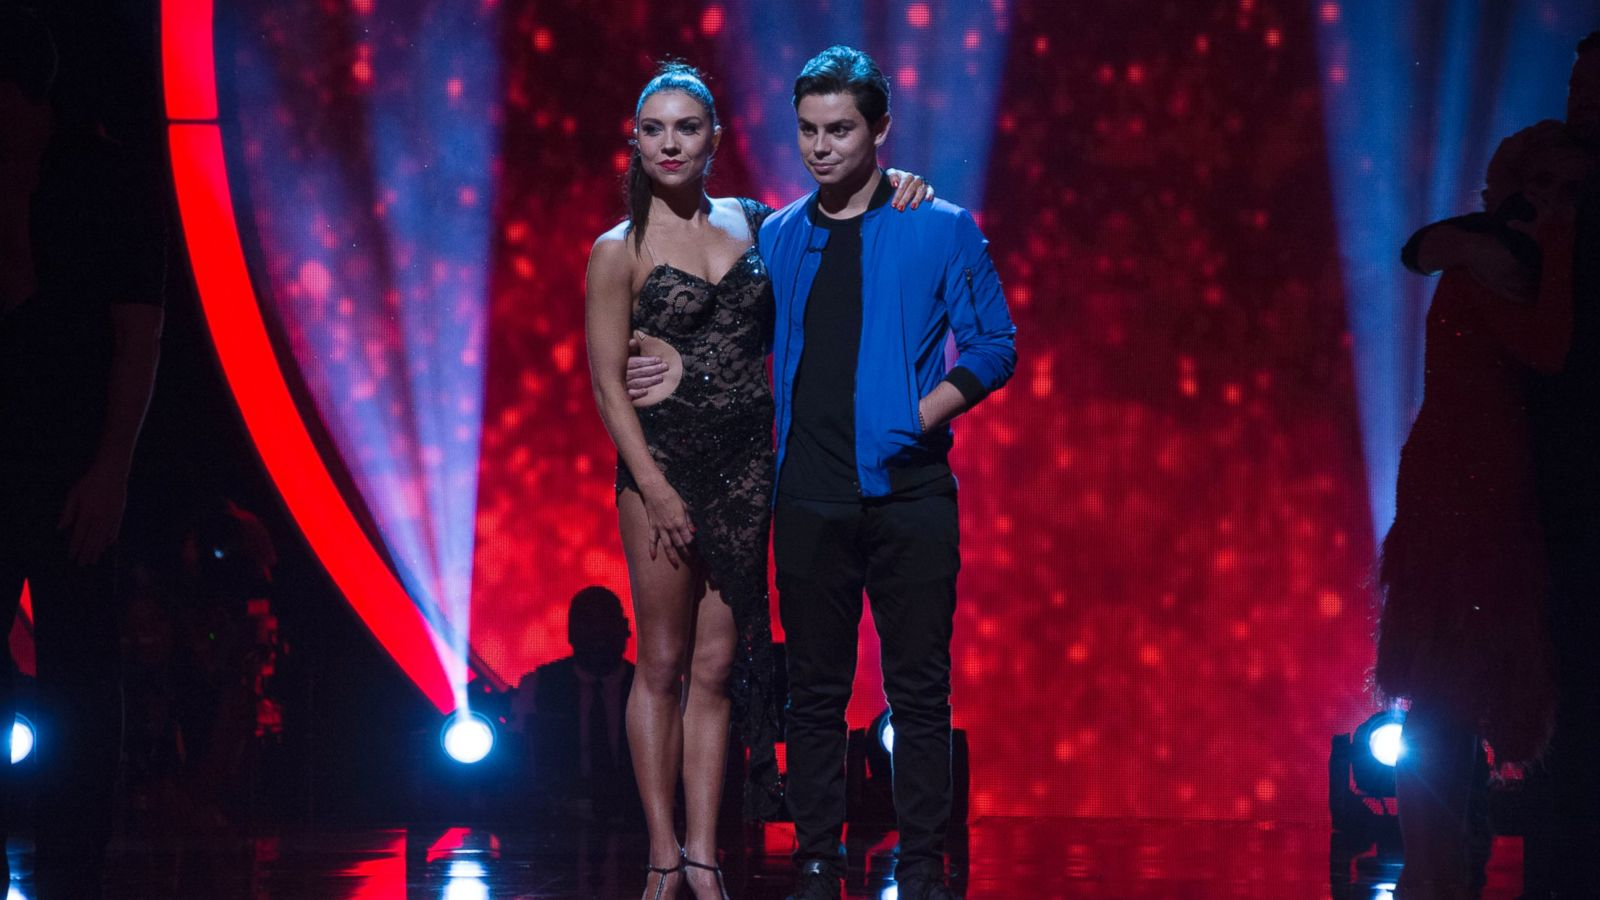 Dancing with the stars recap jake t austin gets the boot abc news m4hsunfo